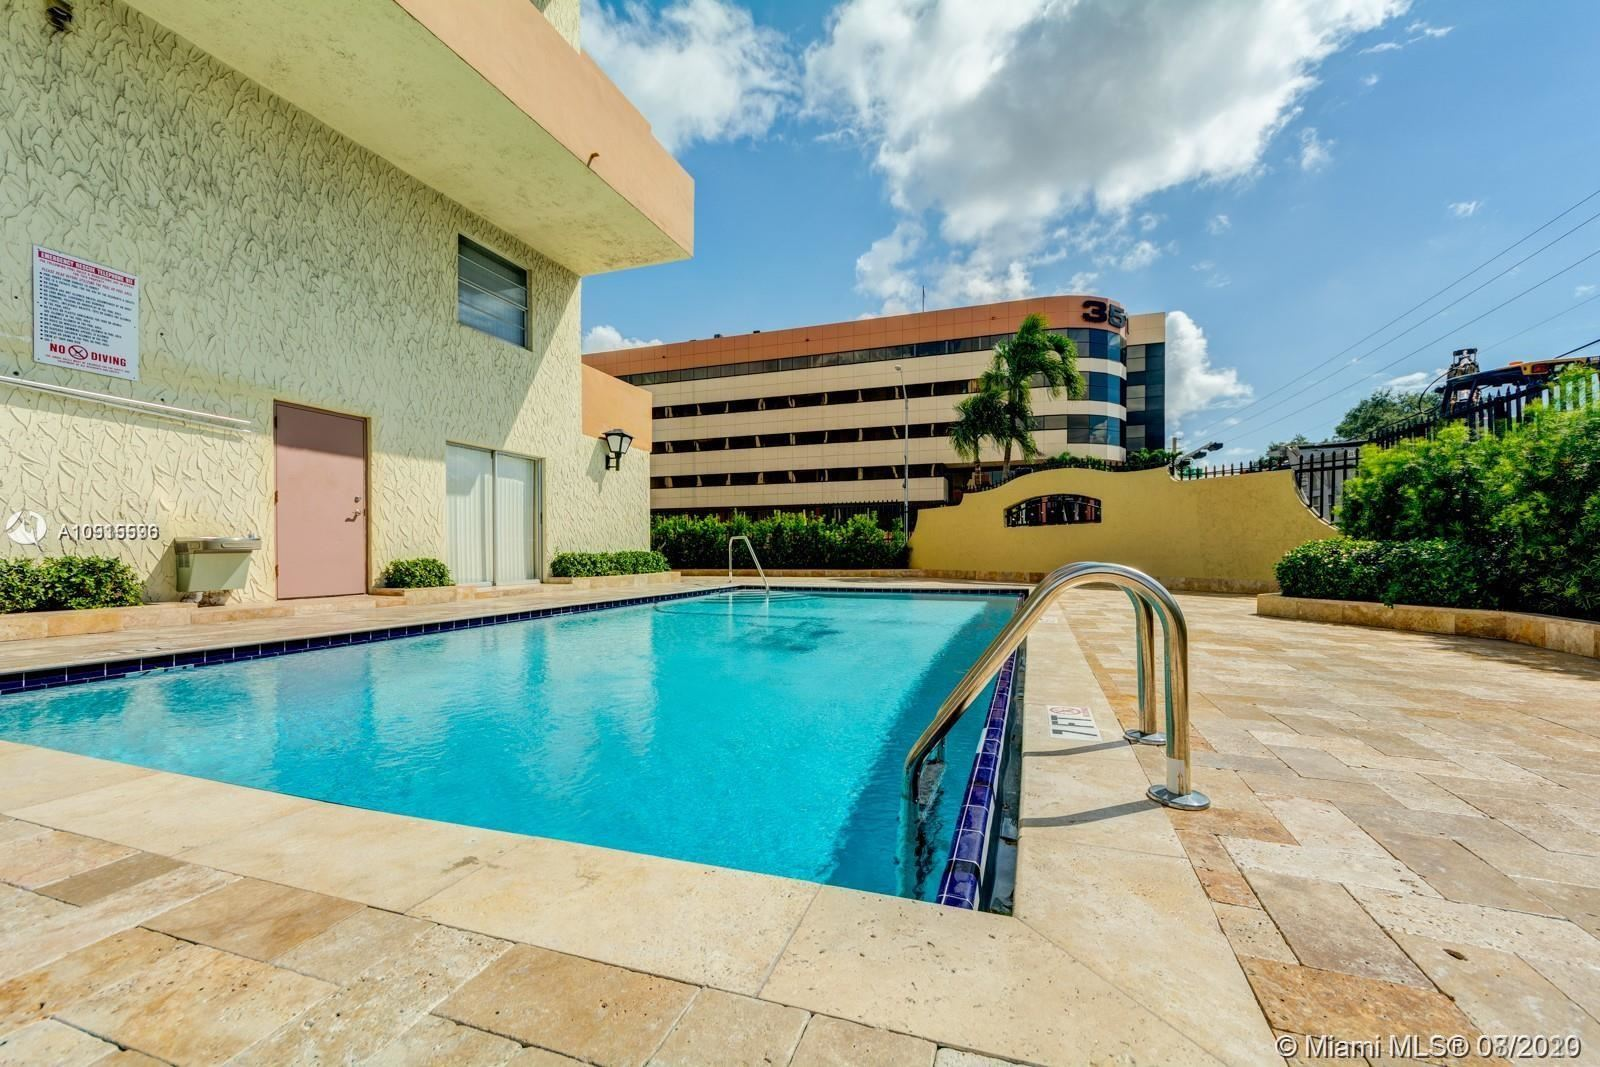 300 NW 42nd Ave #406, Miami, FL 33126 - #: A10915596